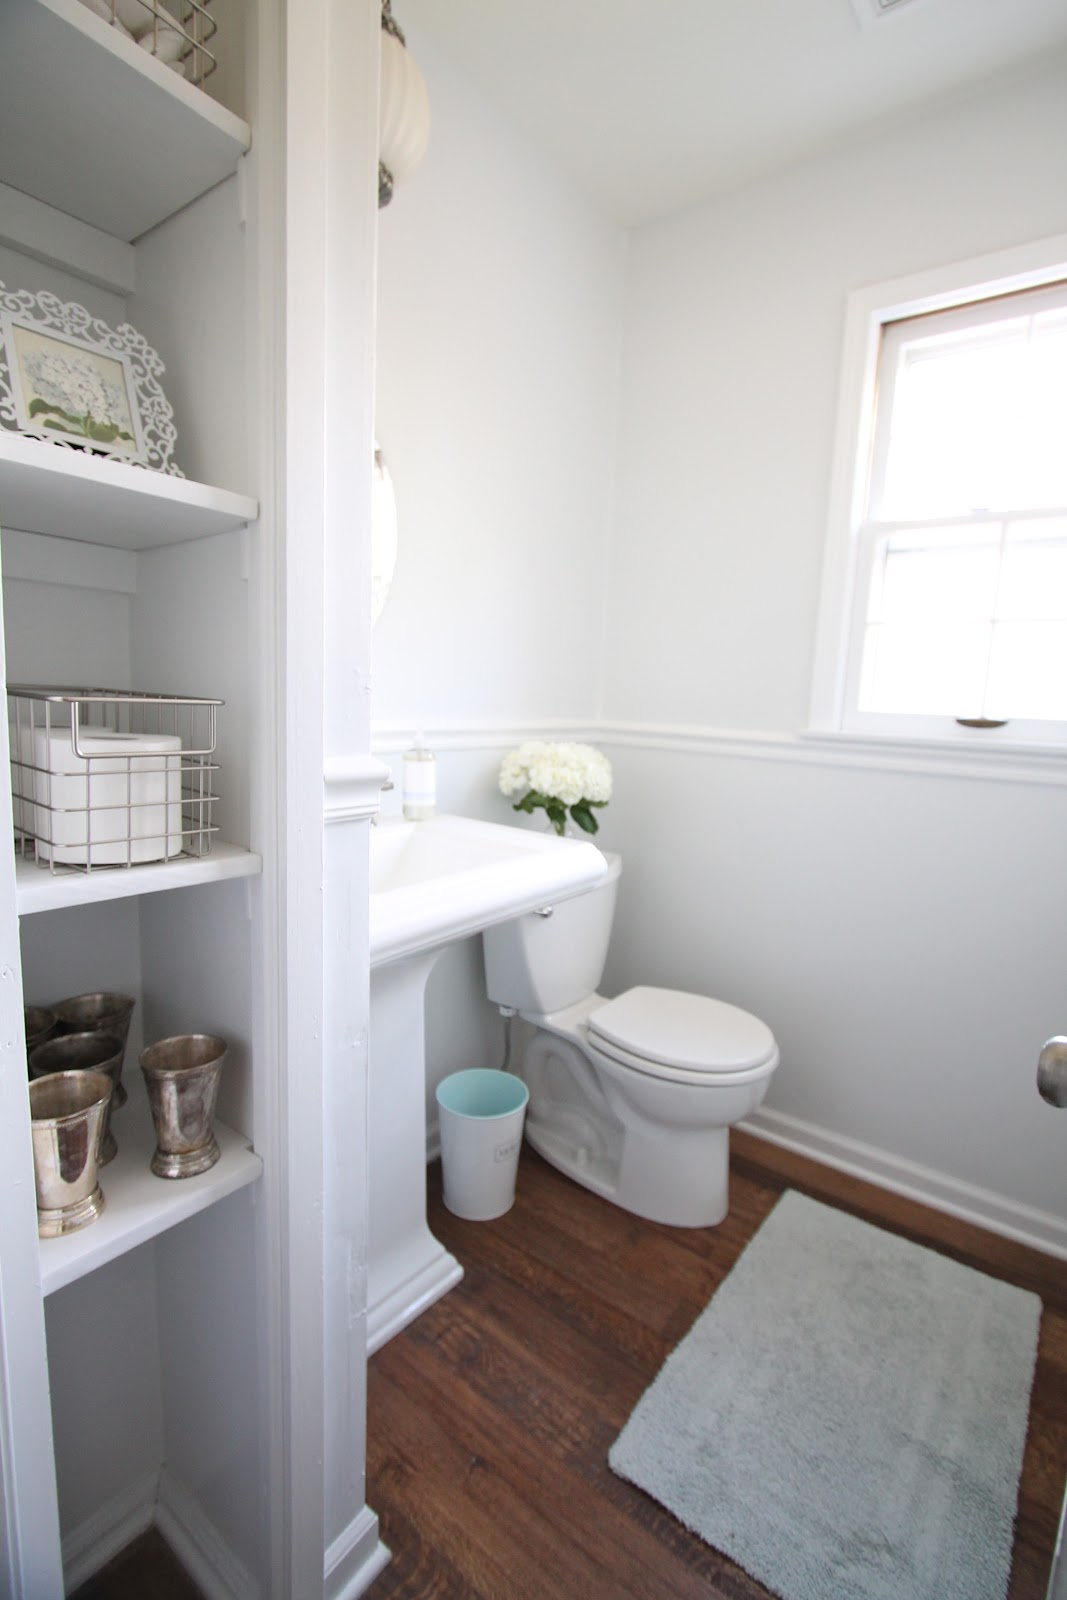 Bathroom Renovation Diy diy bathroom remodel - julie blanner entertaining & home design